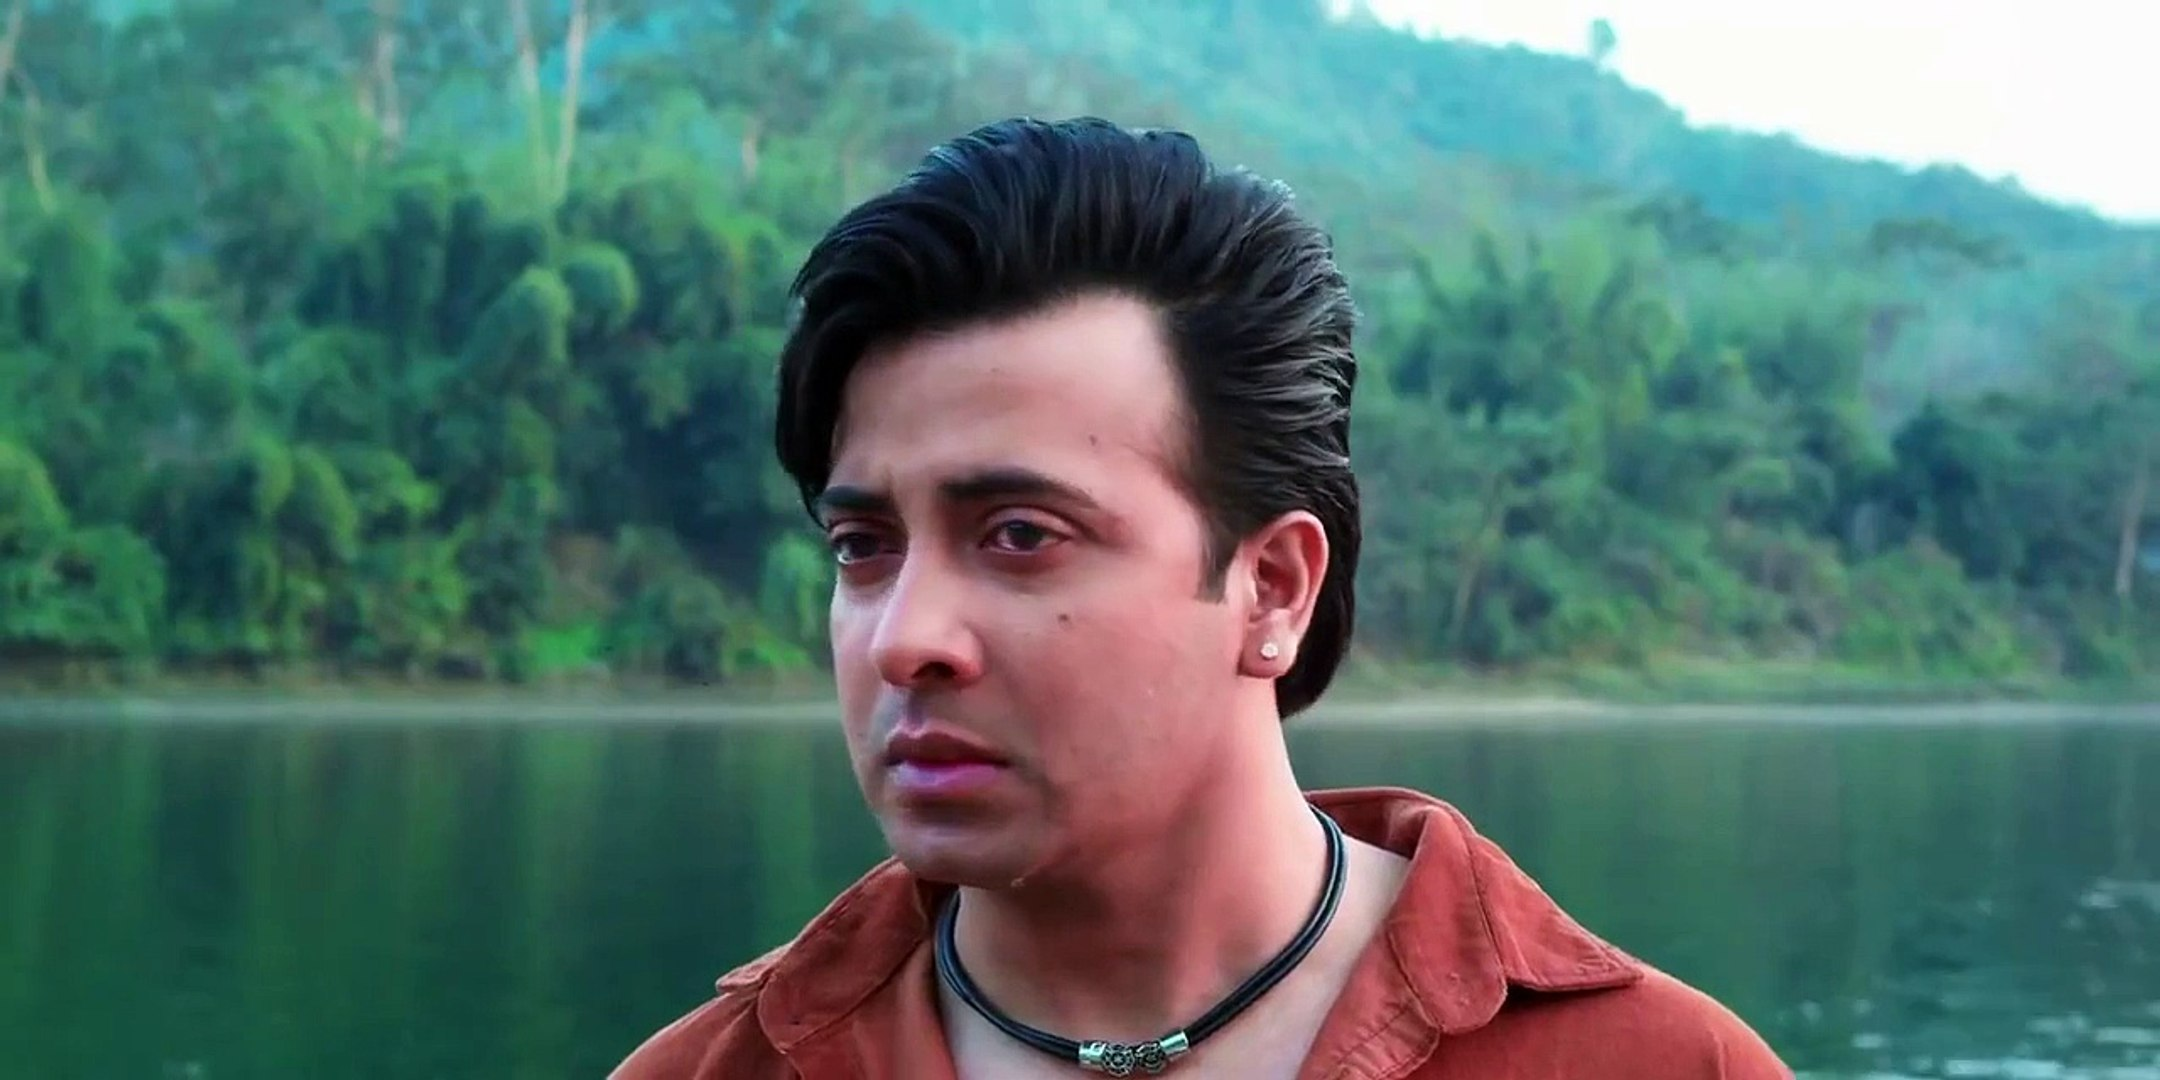 Ki Emon Kotha Video Song - Aro Valobasbo Tomay 2015 By Shakib Khan & Porimoni HD